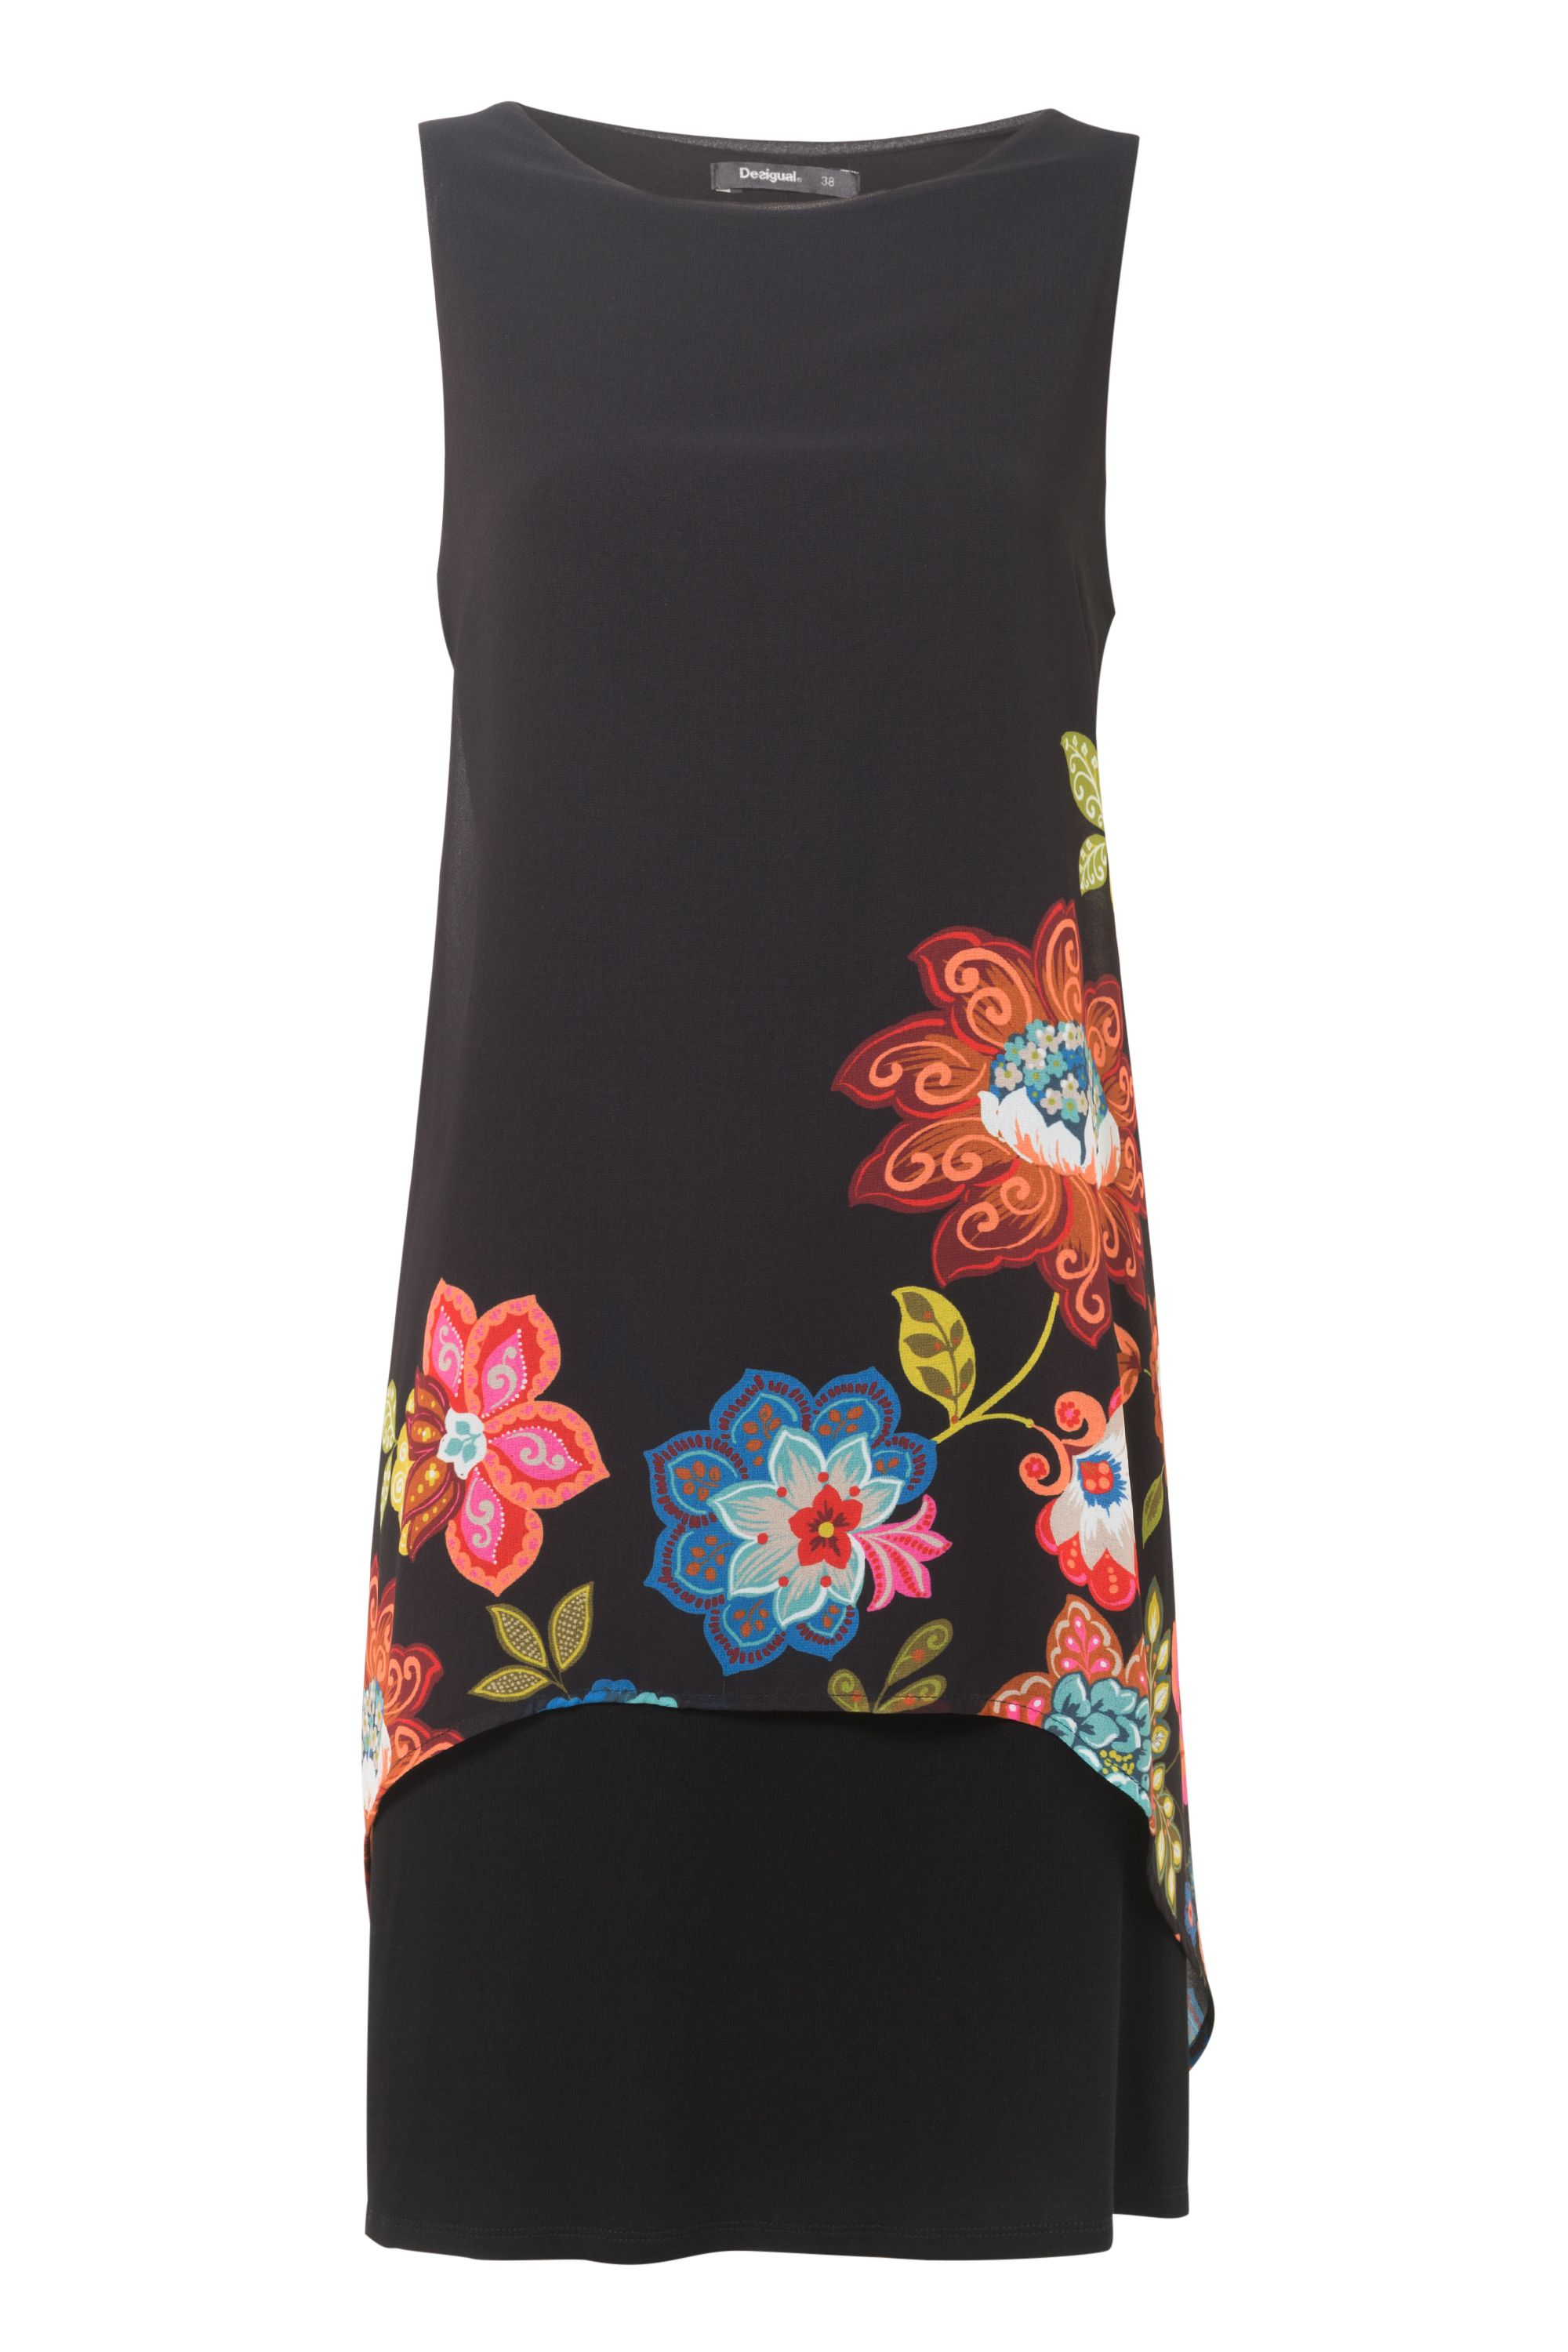 Desigual Picos Caribou Dress, Black